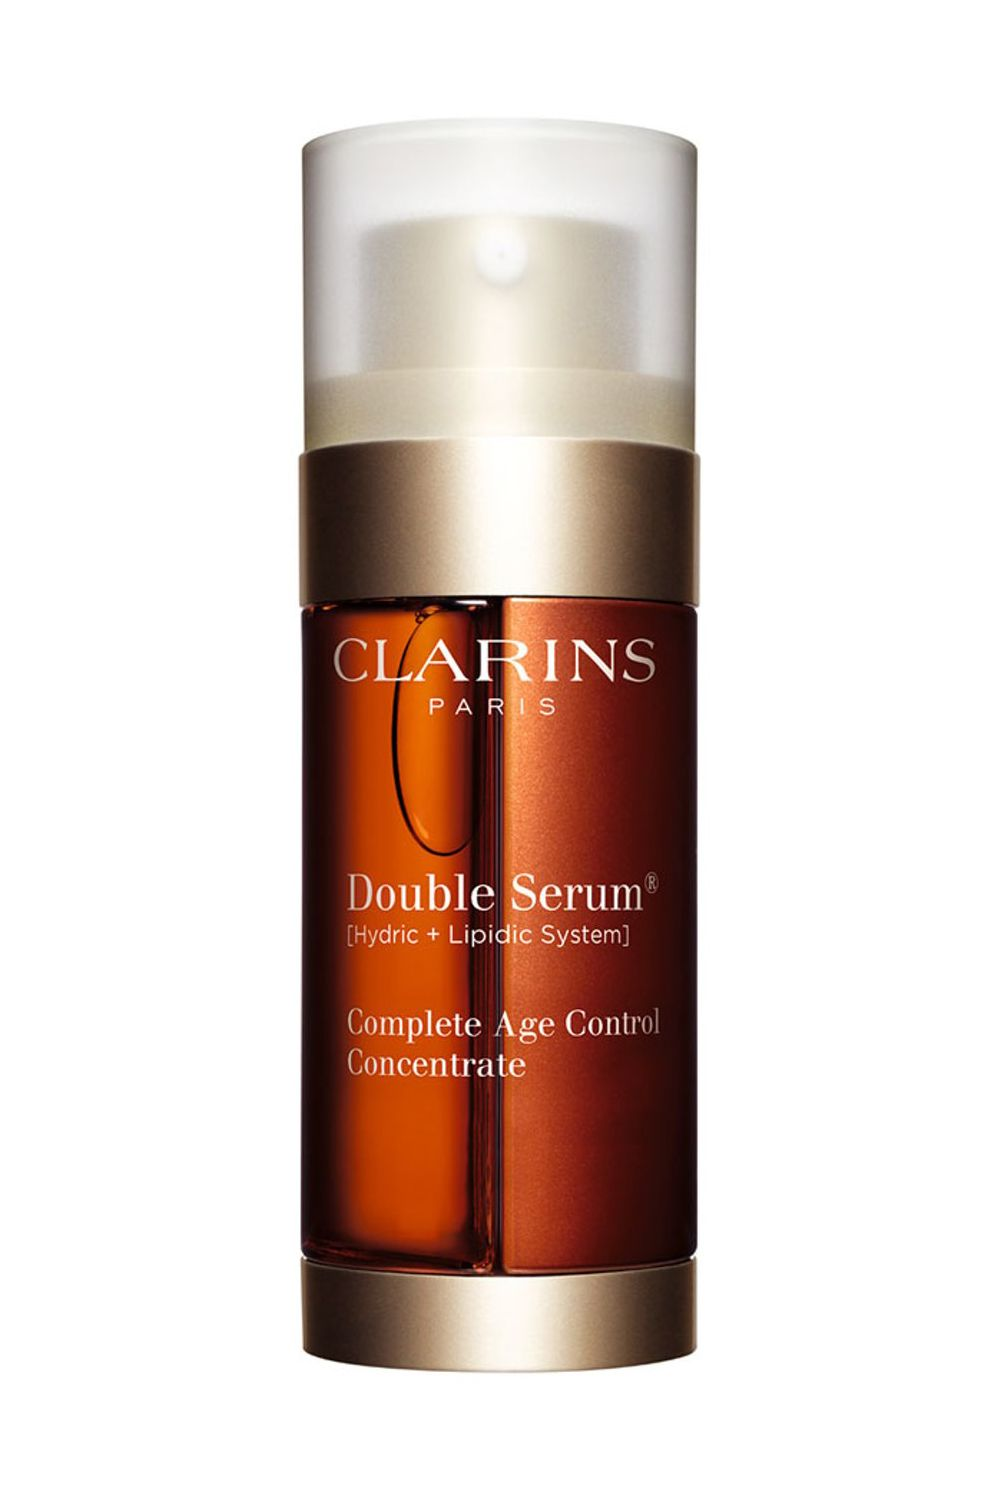 "<p>TWENTY plant extracts! For keeping you young-looking forever even though you've been having a midlife crisis since age 14. </p><p>$119, <a href=""http://shop.nordstrom.com/s/clarins-double-serum-complete-age-control-concentrate/3431180"" target=""_blank"" data-tracking-id=""recirc-text-link"">shop.nordstrom.com</a>.</p>"